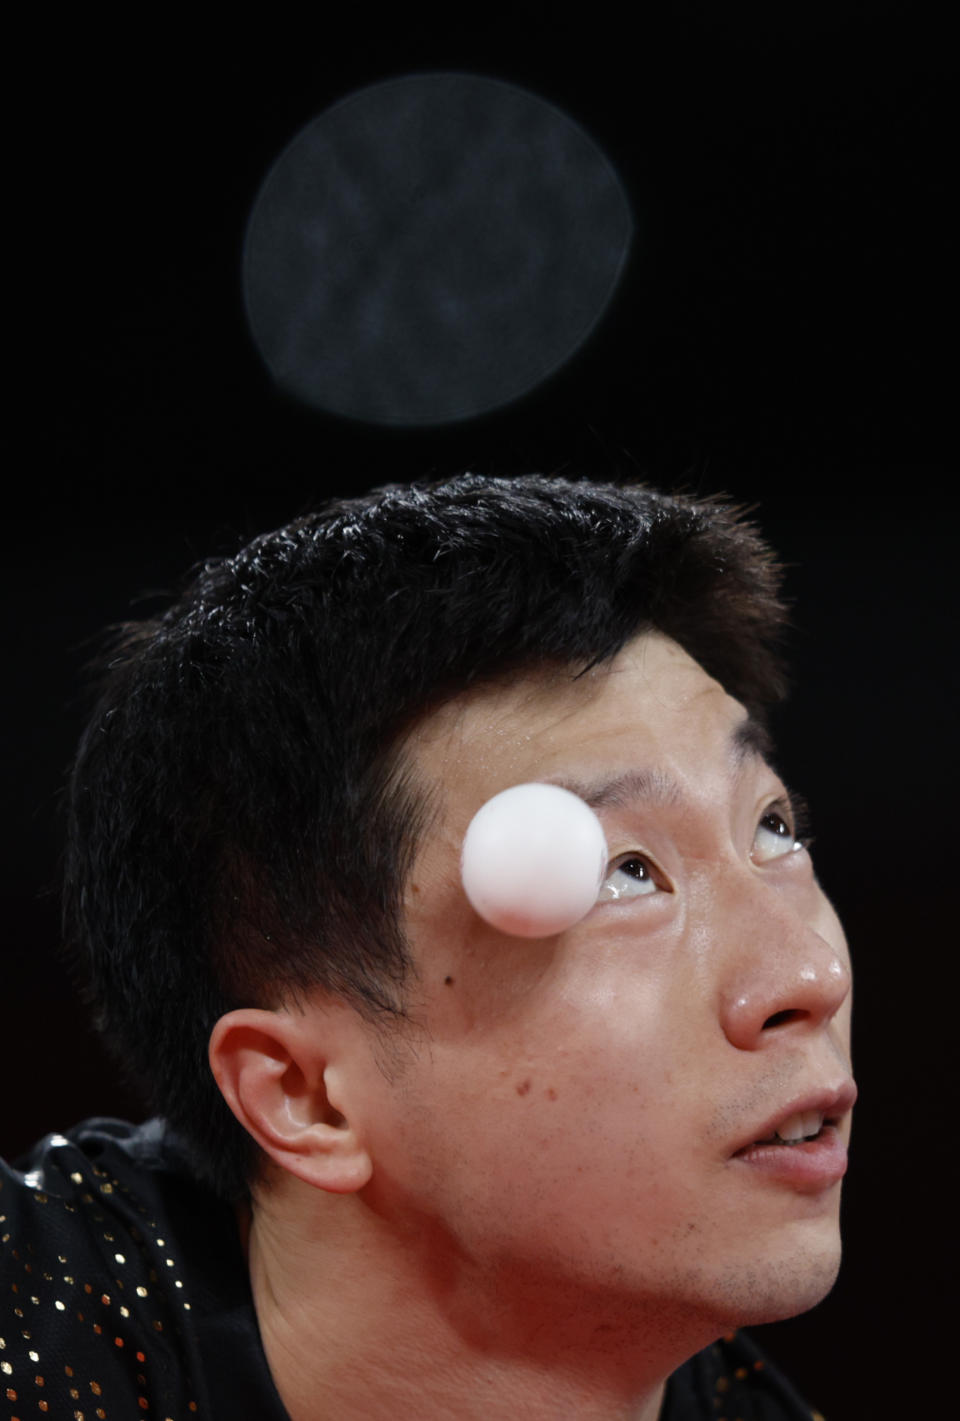 <p>Ma Long of Team China serves the ball during his Men's Team Gold Medal table tennis match on day fourteen of the Tokyo 2020 Olympic Games at Tokyo Metropolitan Gymnasium on August 06, 2021 in Tokyo, Japan. (Photo by Adam Pretty/Getty Images)</p>